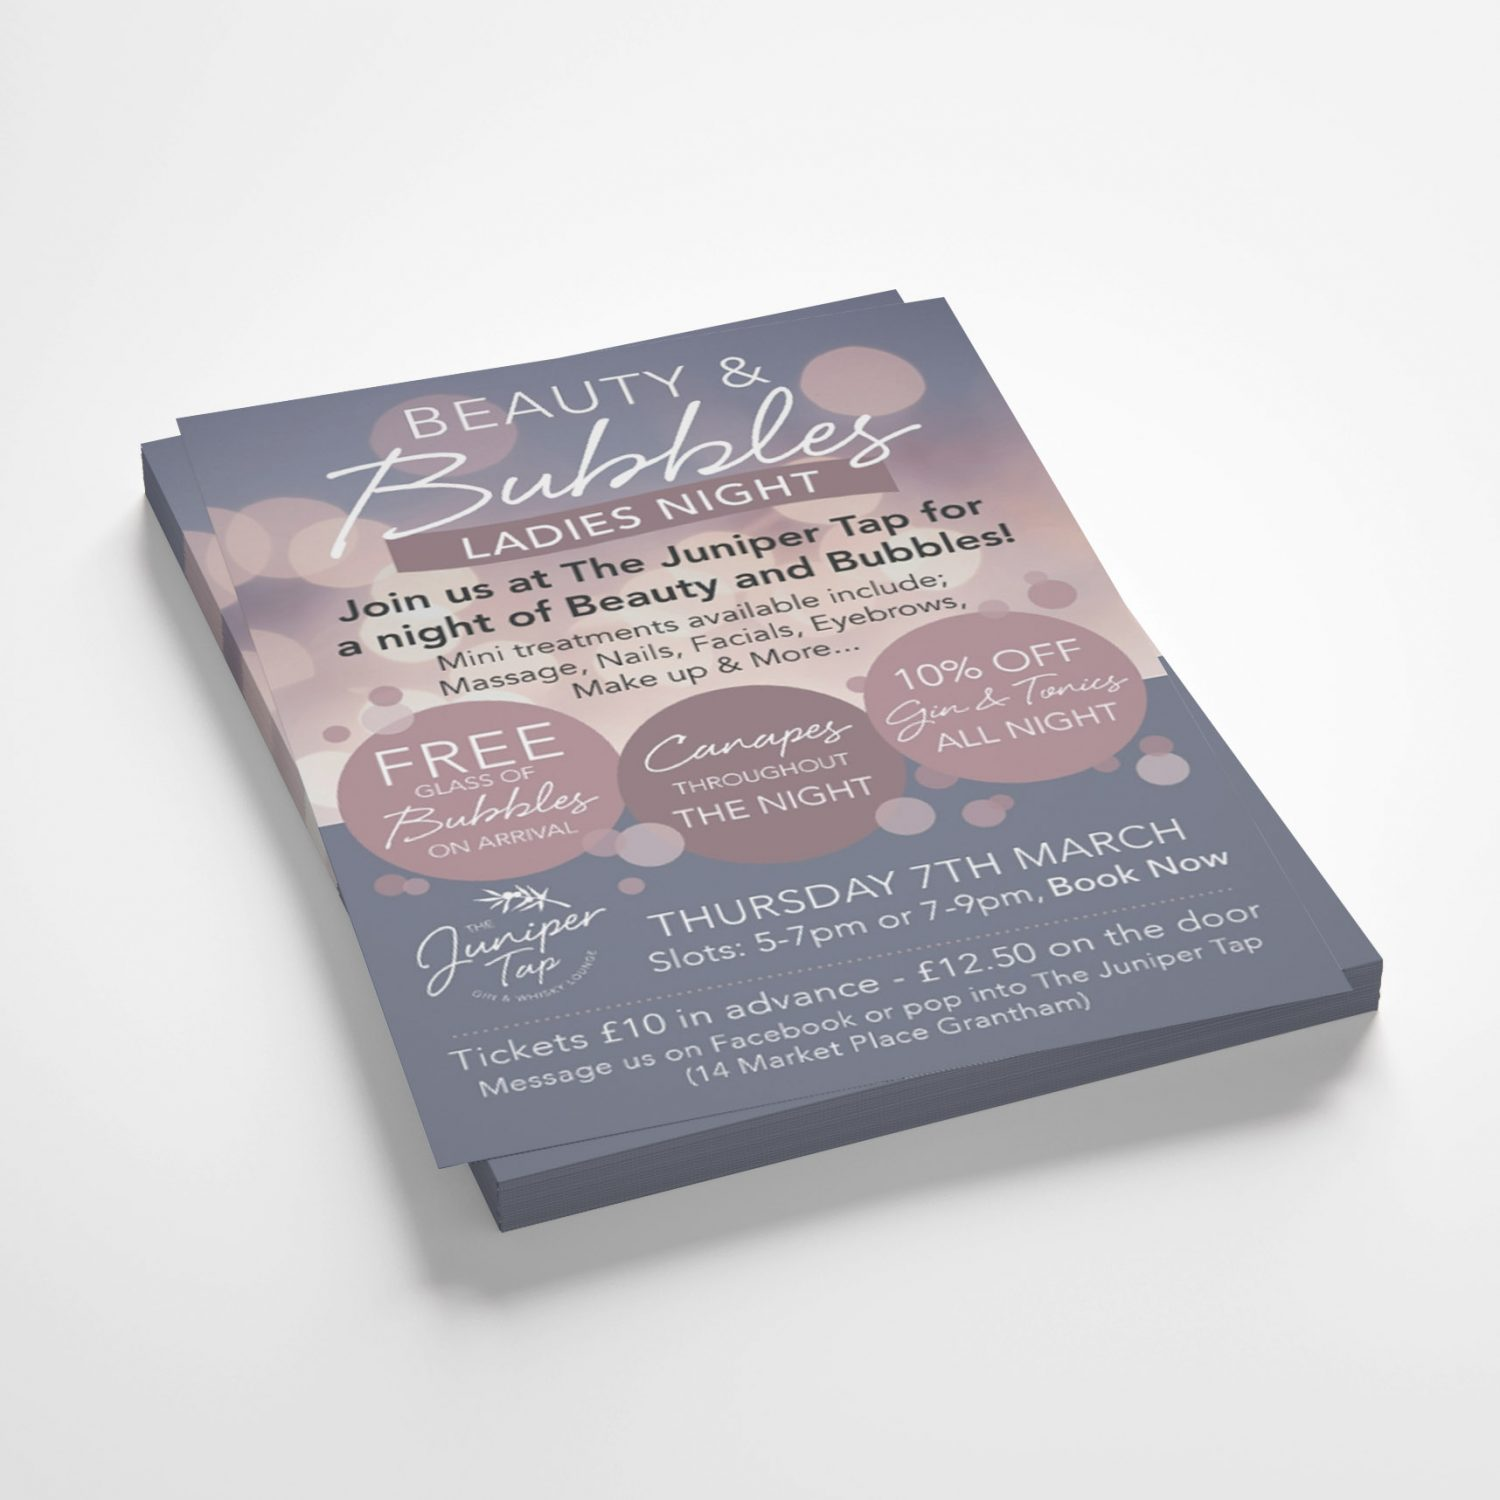 Leaflets for Beauty and bubbles night